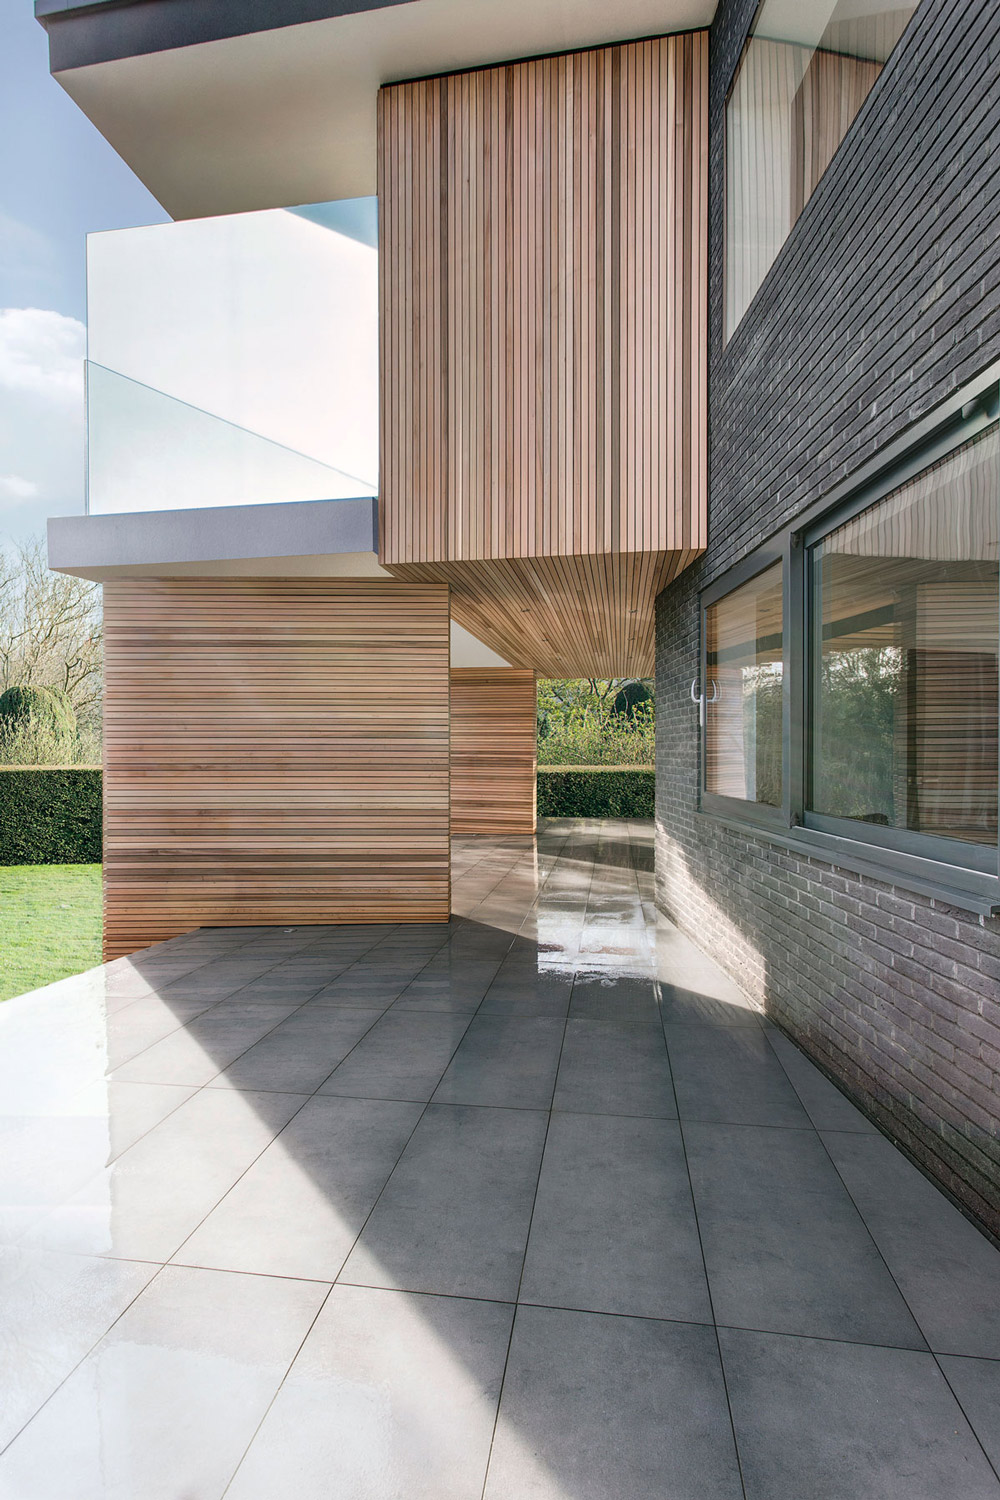 Terrace, Wood Cladding, Modern Home in Hampshire, England